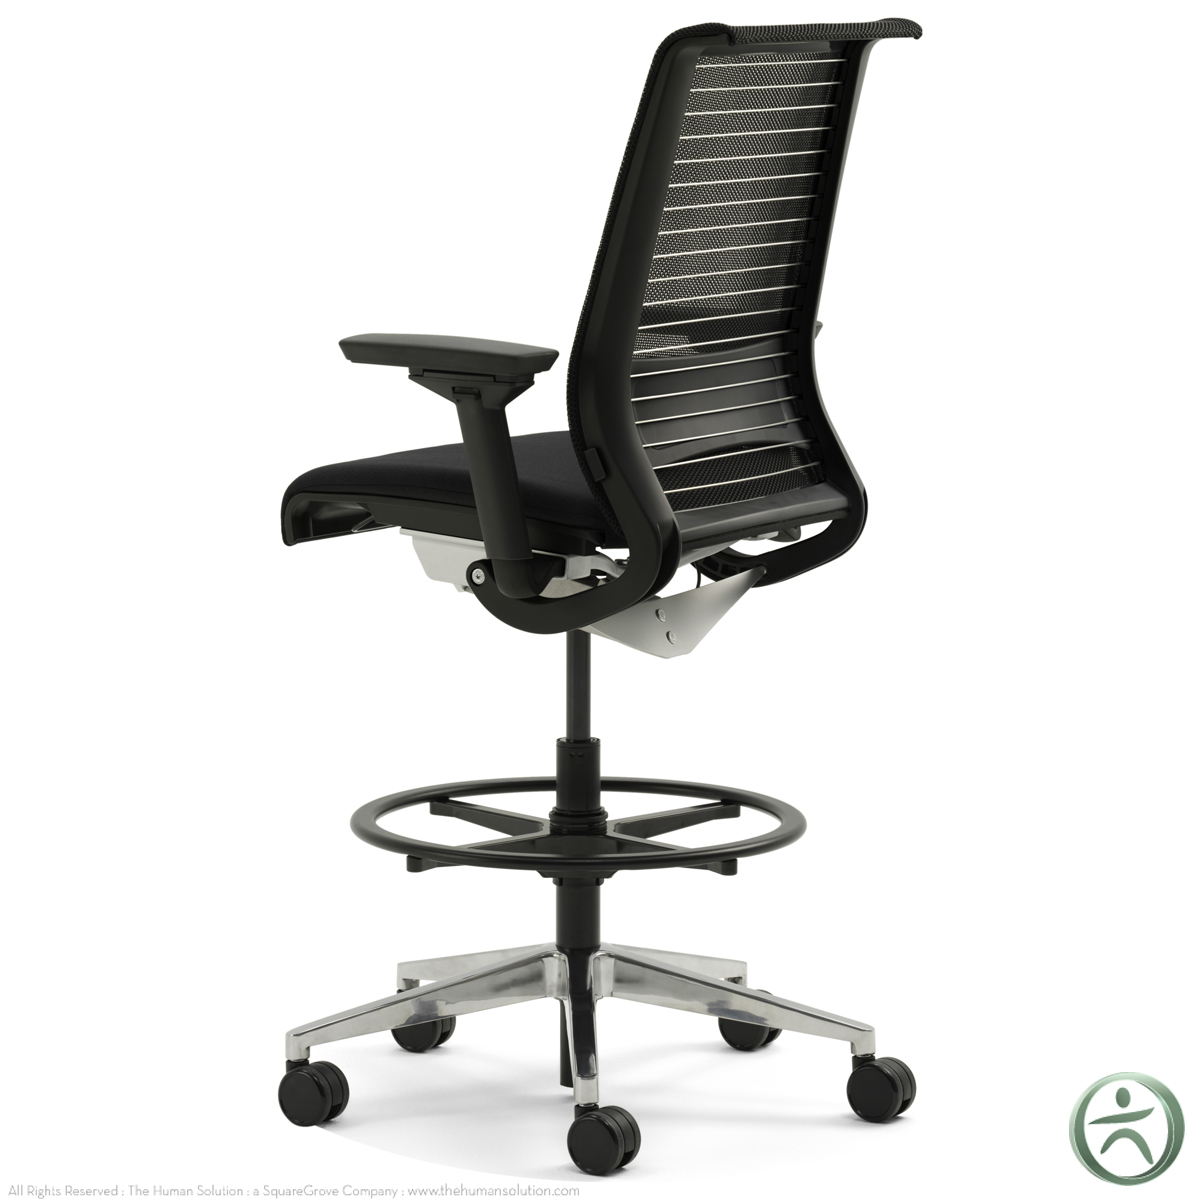 Shop Steelcase Think Drafting Stools With 3D Knit Back